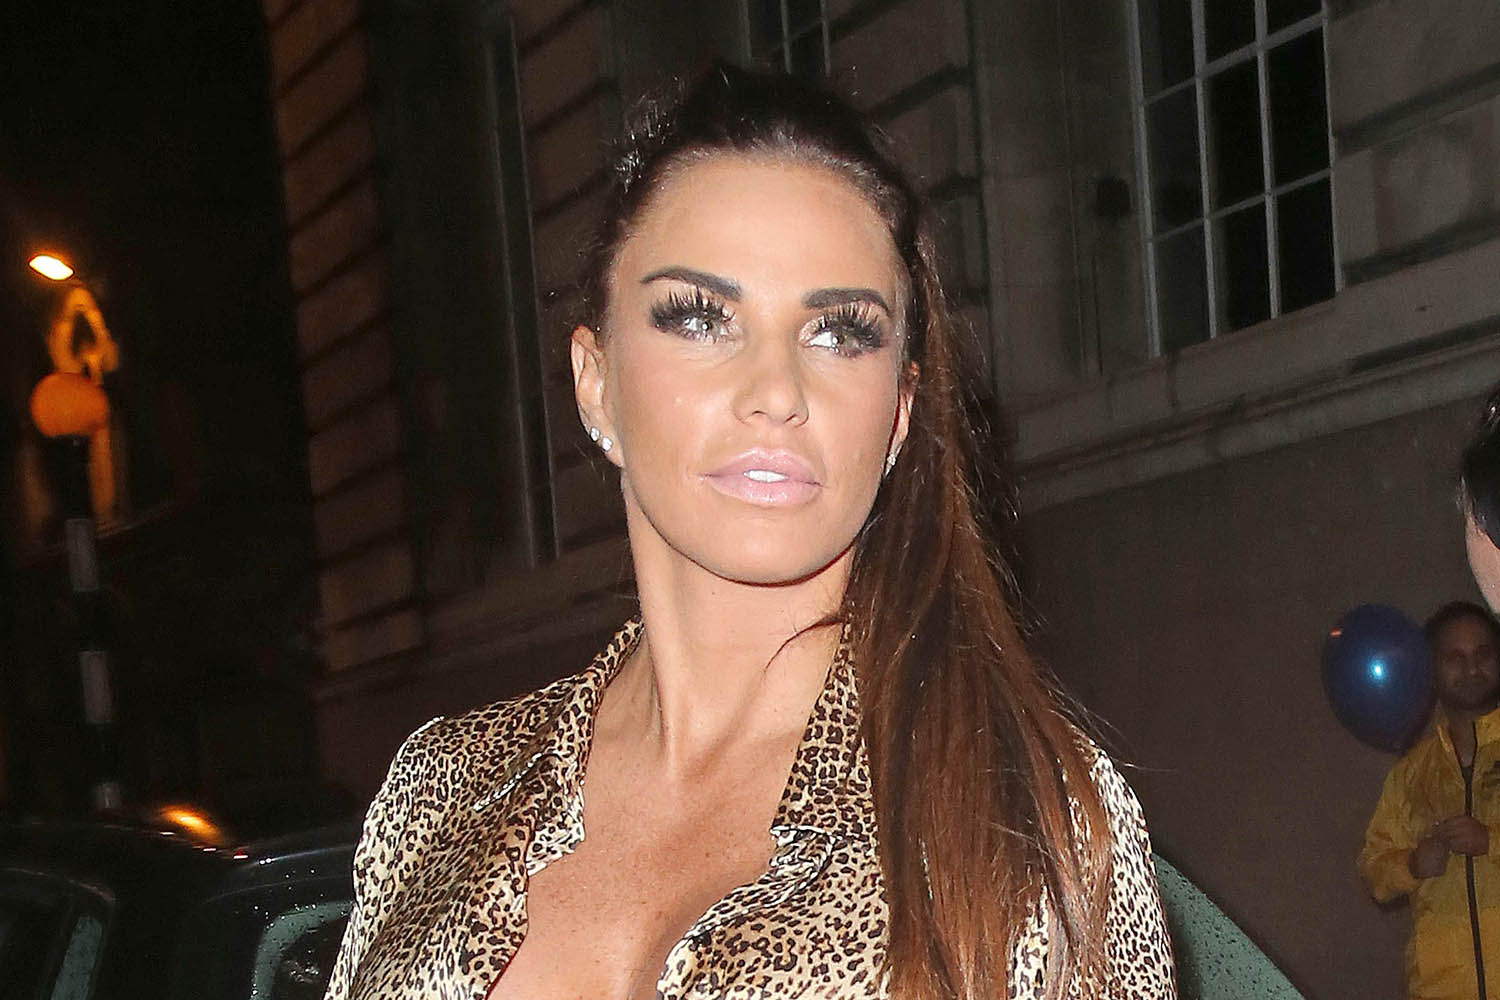 Katie Price hits back at claims she's 'found her perfect man with Dreamboys hunk'